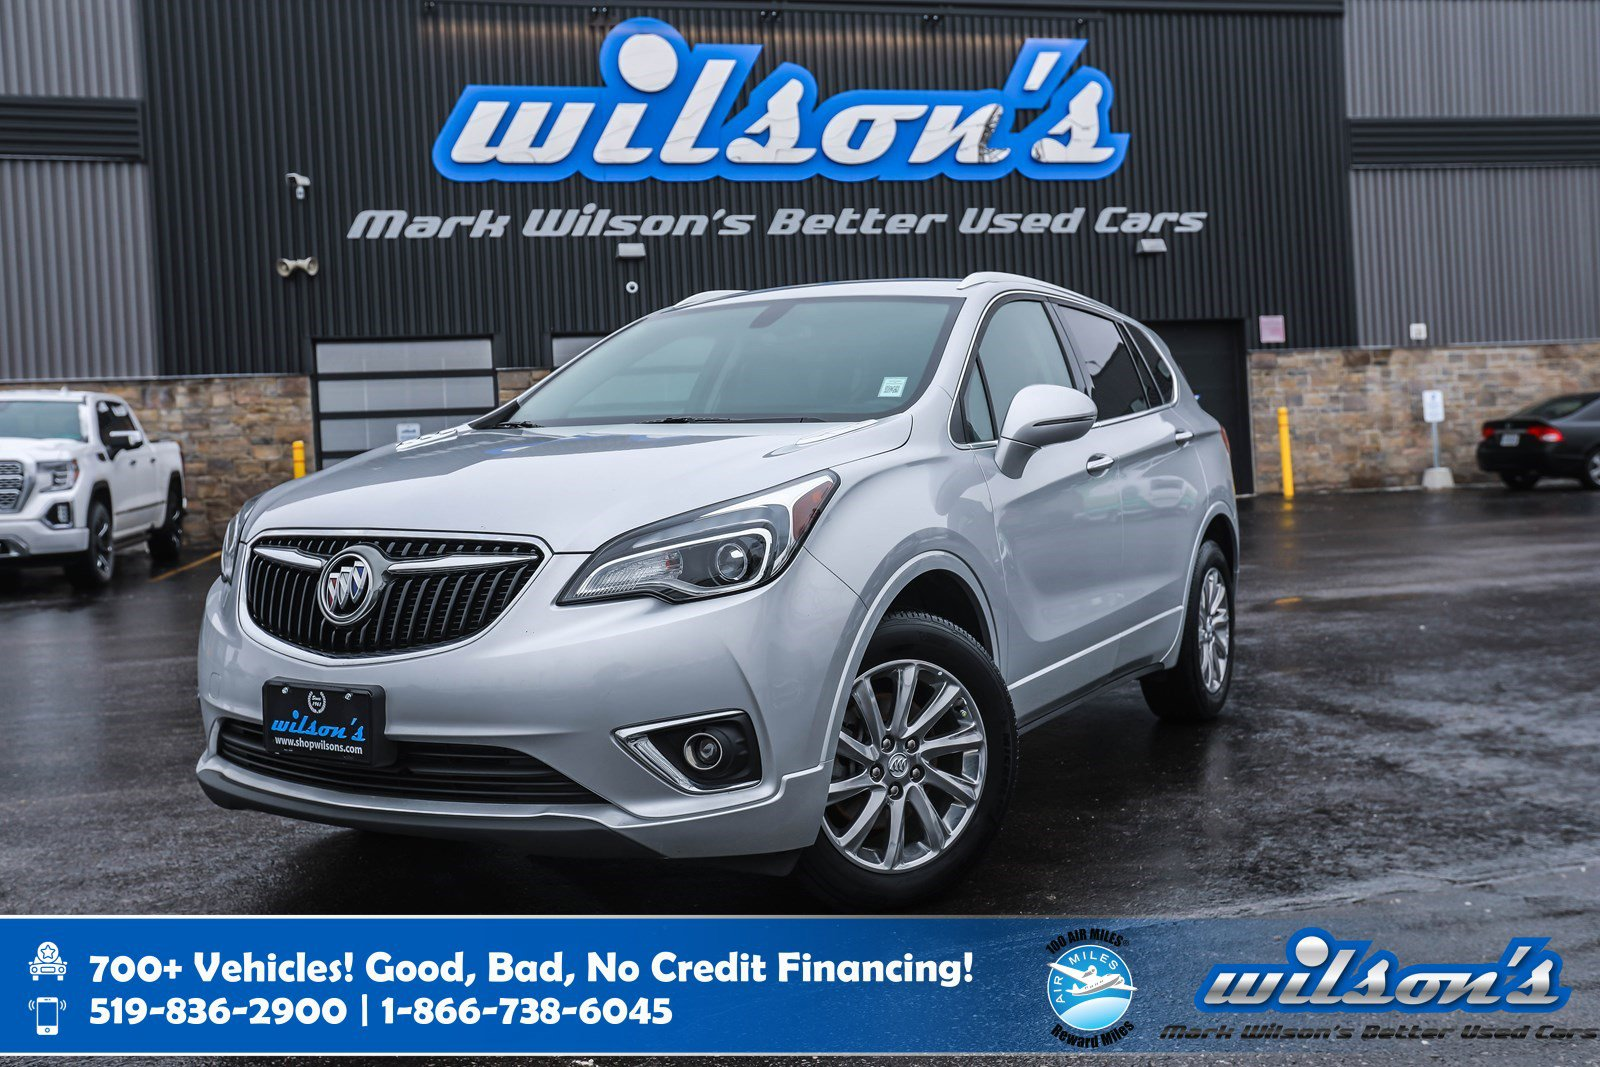 Certified Pre-Owned 2019 Buick Envision Essence AWD, Leather, Heated Steering + Seats, Remote Start, Bluetooth, Rear Camera and more!